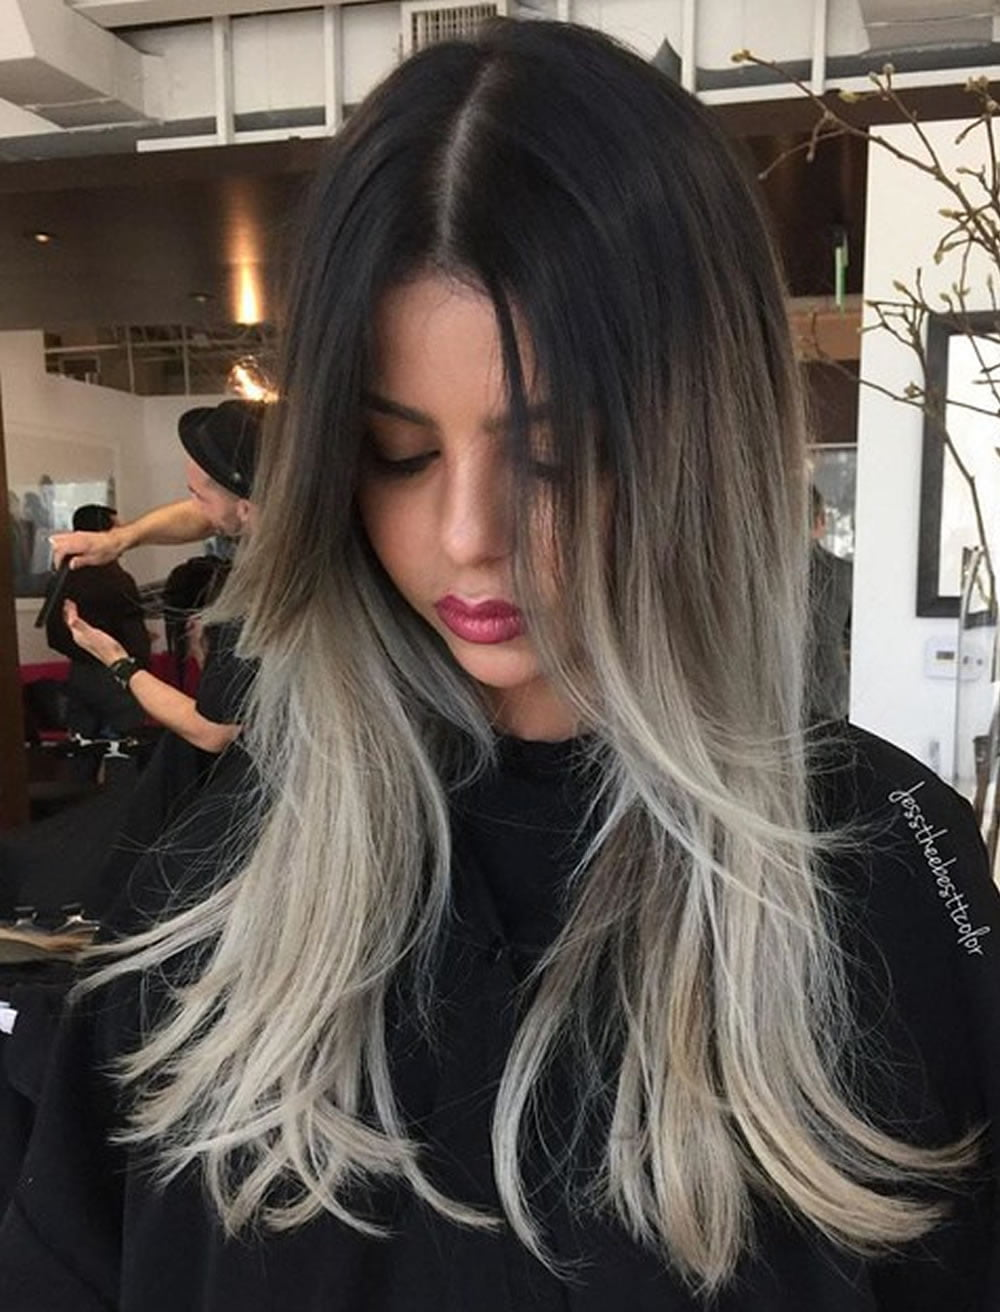 Grey Hair Trend 20 Glamorous Hairstyles For Women 2018 Page 2